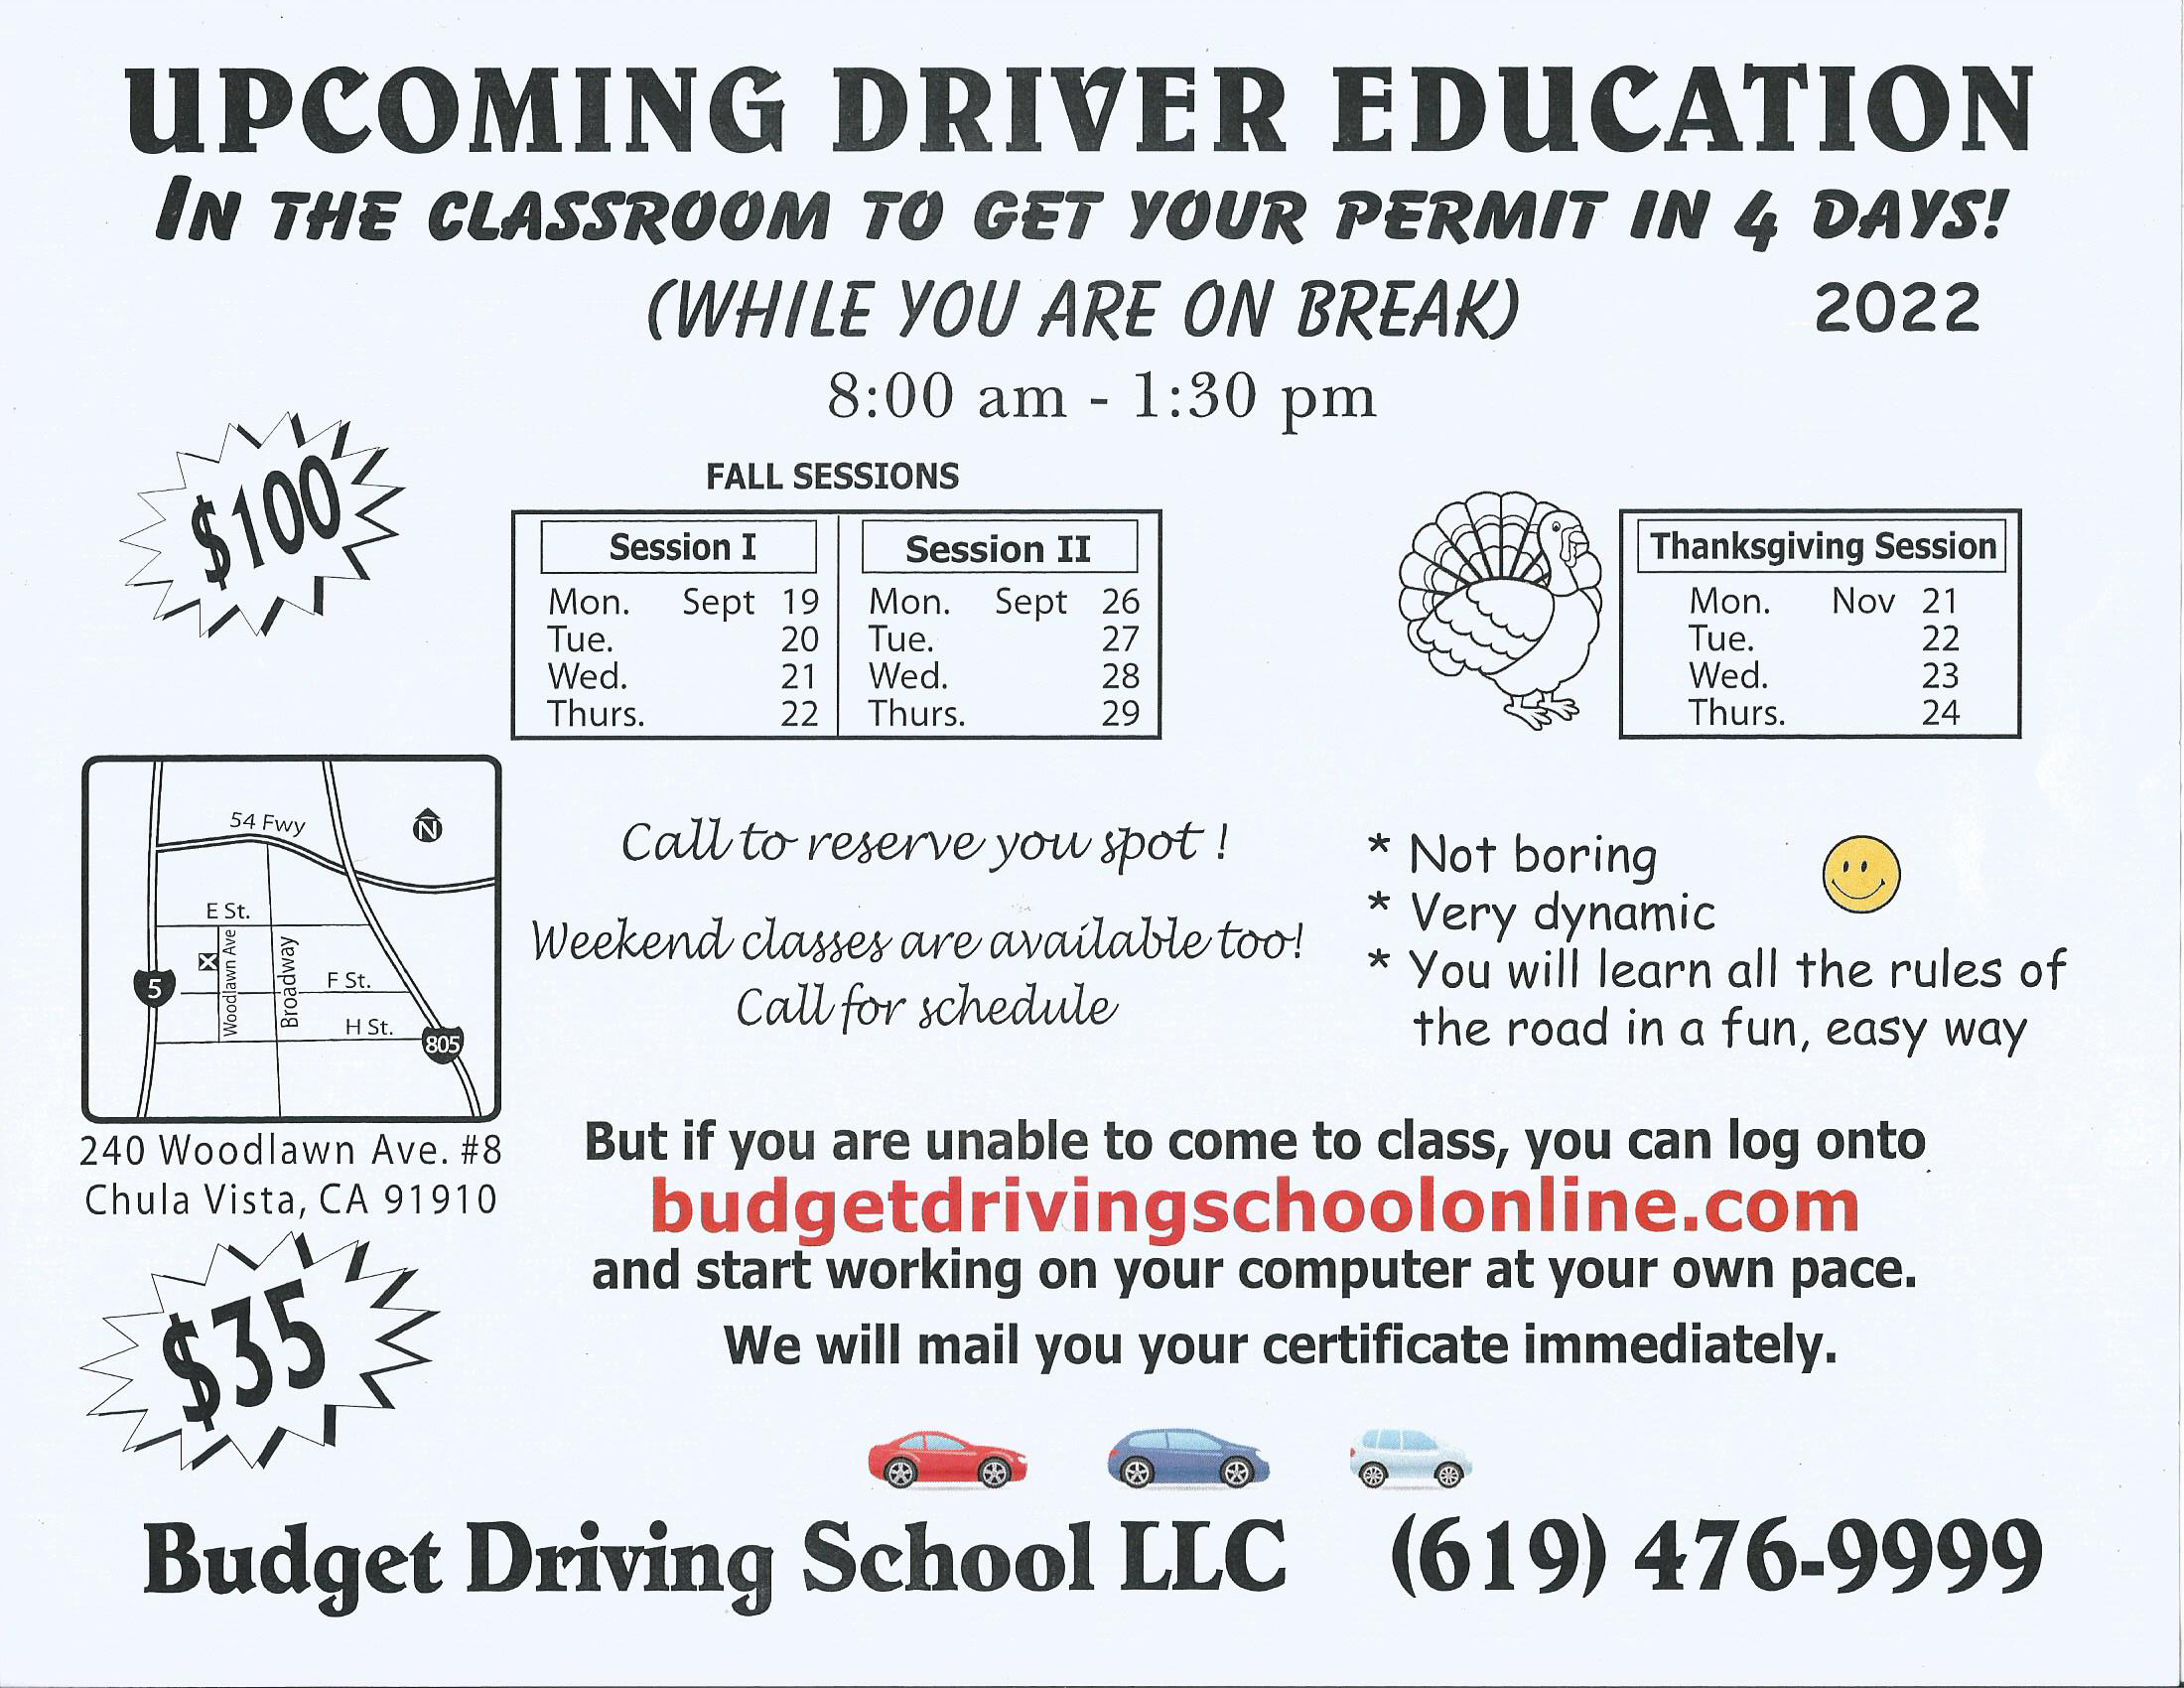 Worksheets Driver Education Worksheets drivered classroombudget drivingschool 619 476 9999 offer valid only on your first dmv attempt